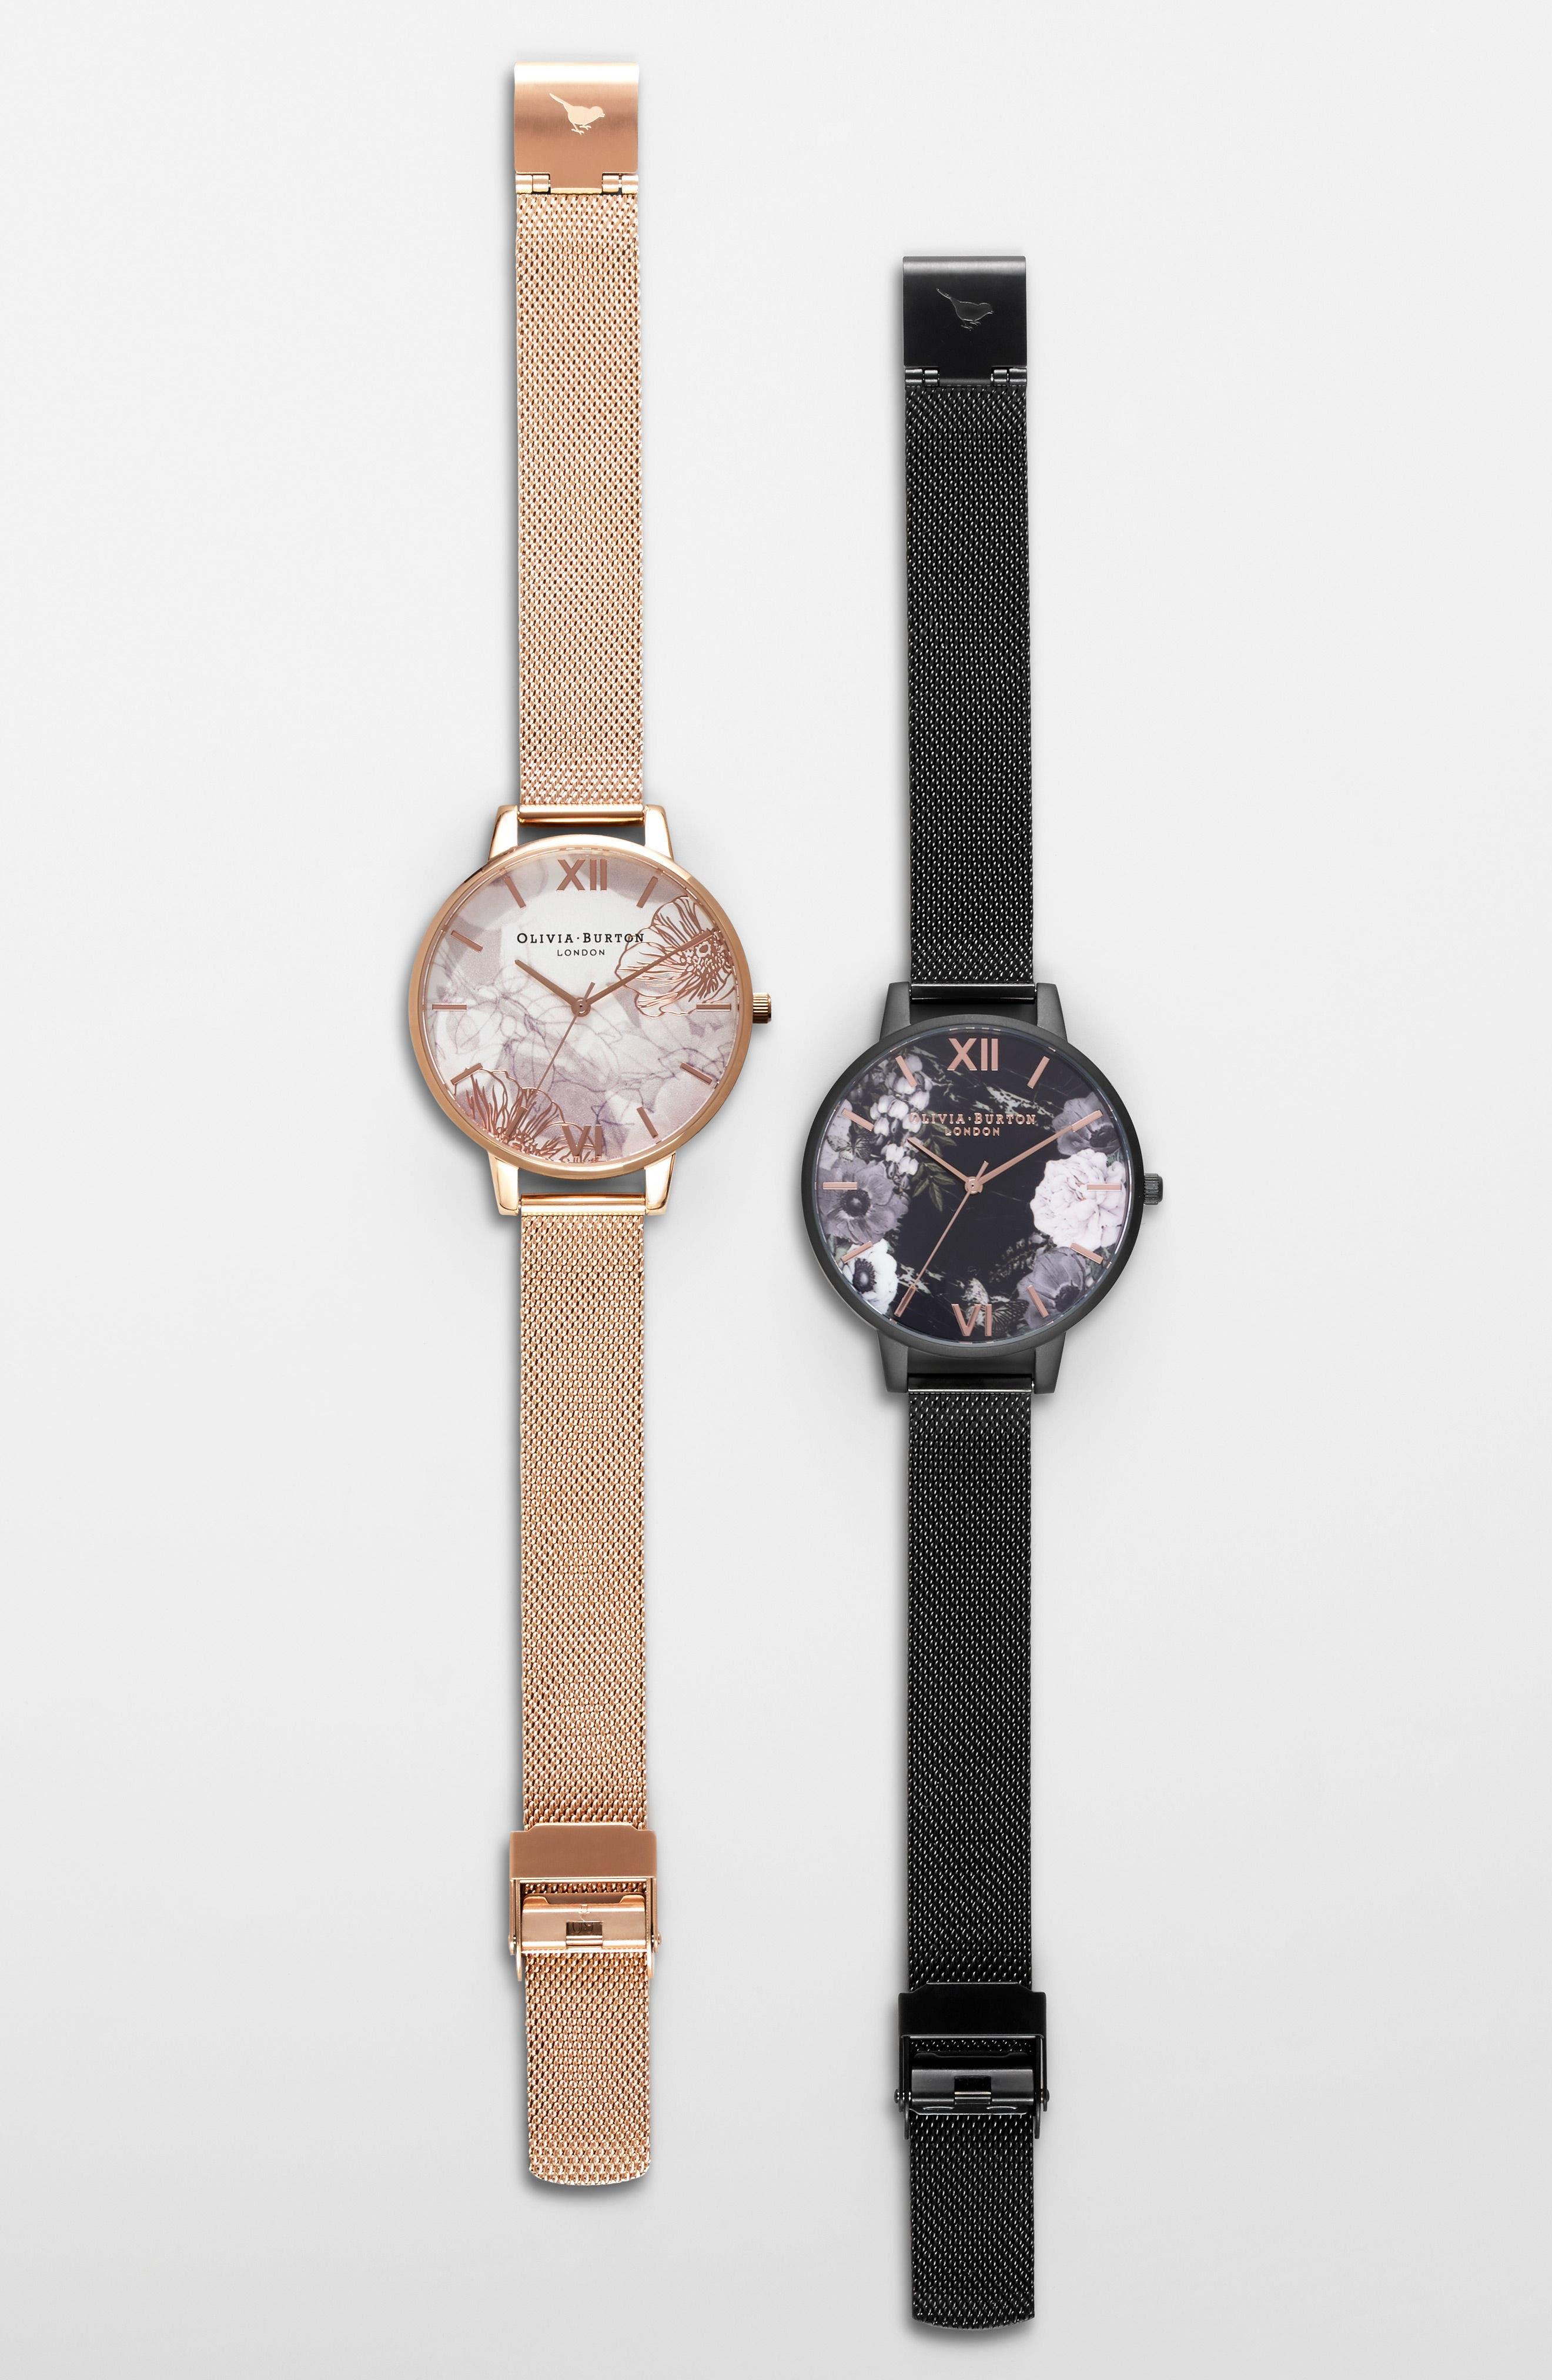 OLIVIA BURTON, Oliva Burton Abstract Florals Mesh Bracelet Watch, 38mm, Alternate thumbnail 7, color, ROSE GOLD